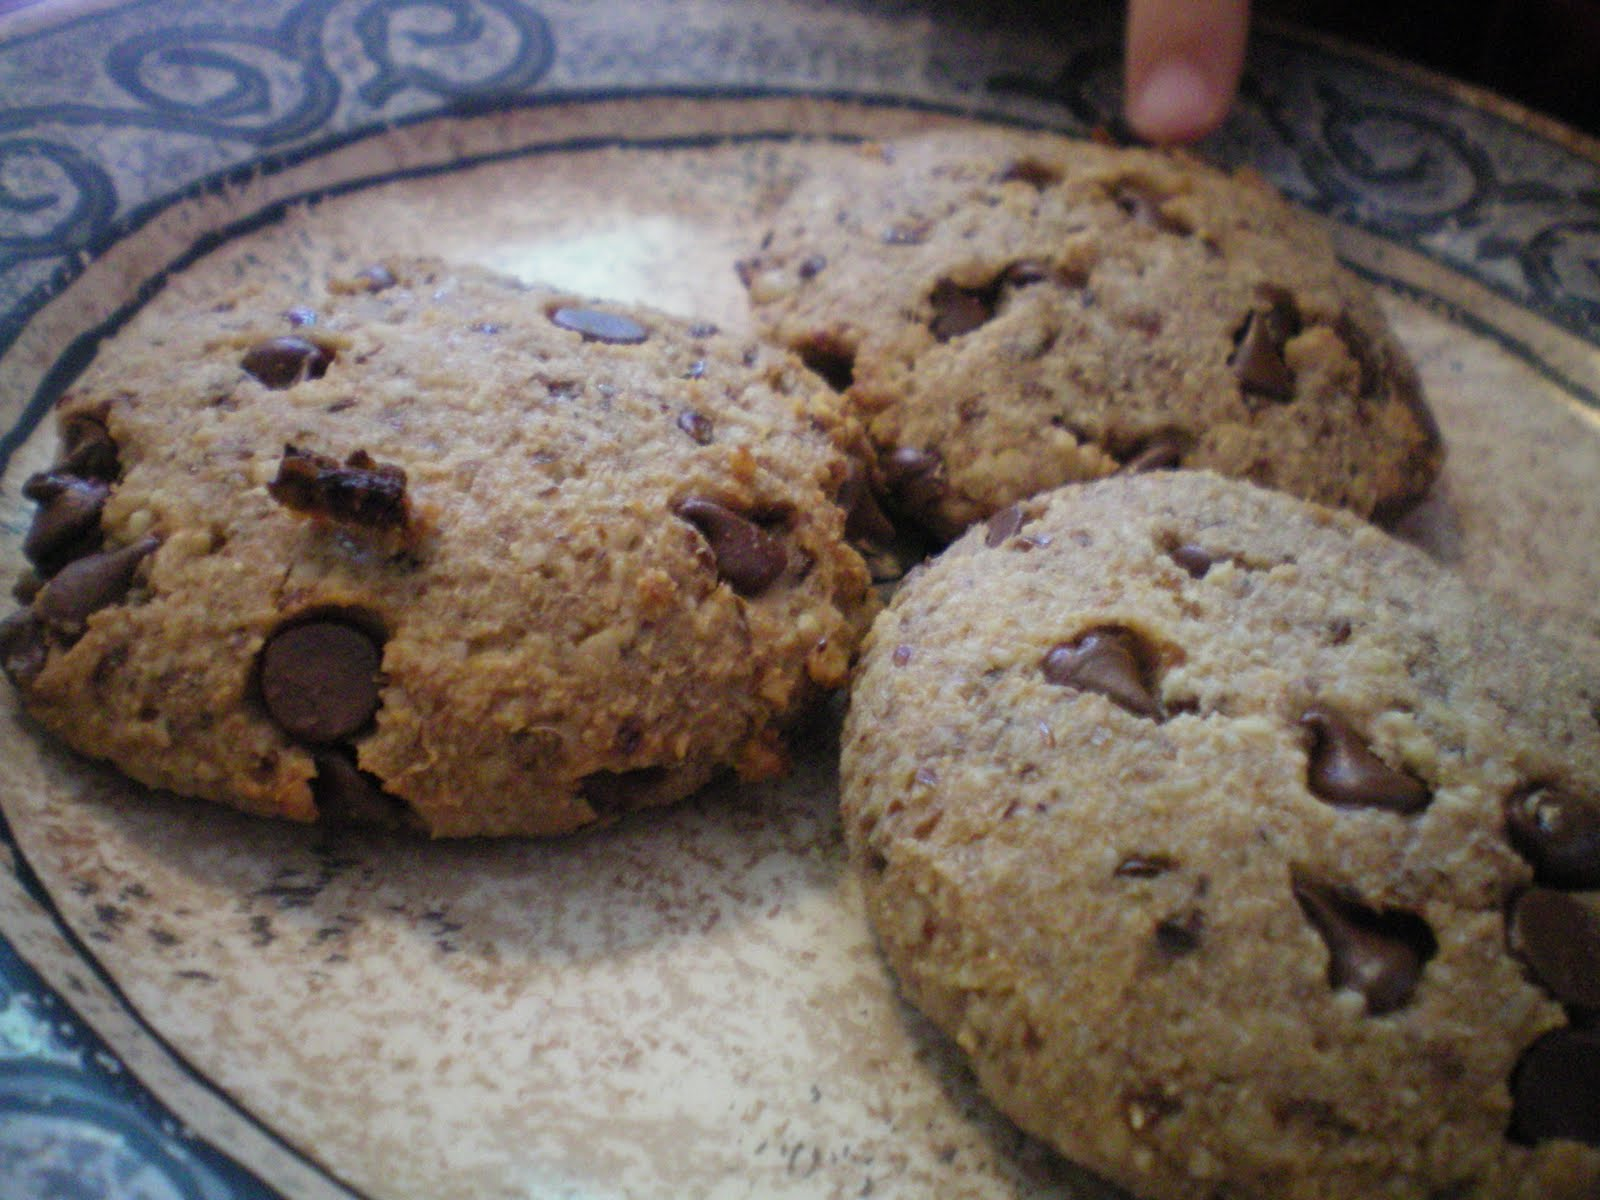 The Primal Home: Chocolate Chip Cookies- Grain Free, Egg Free